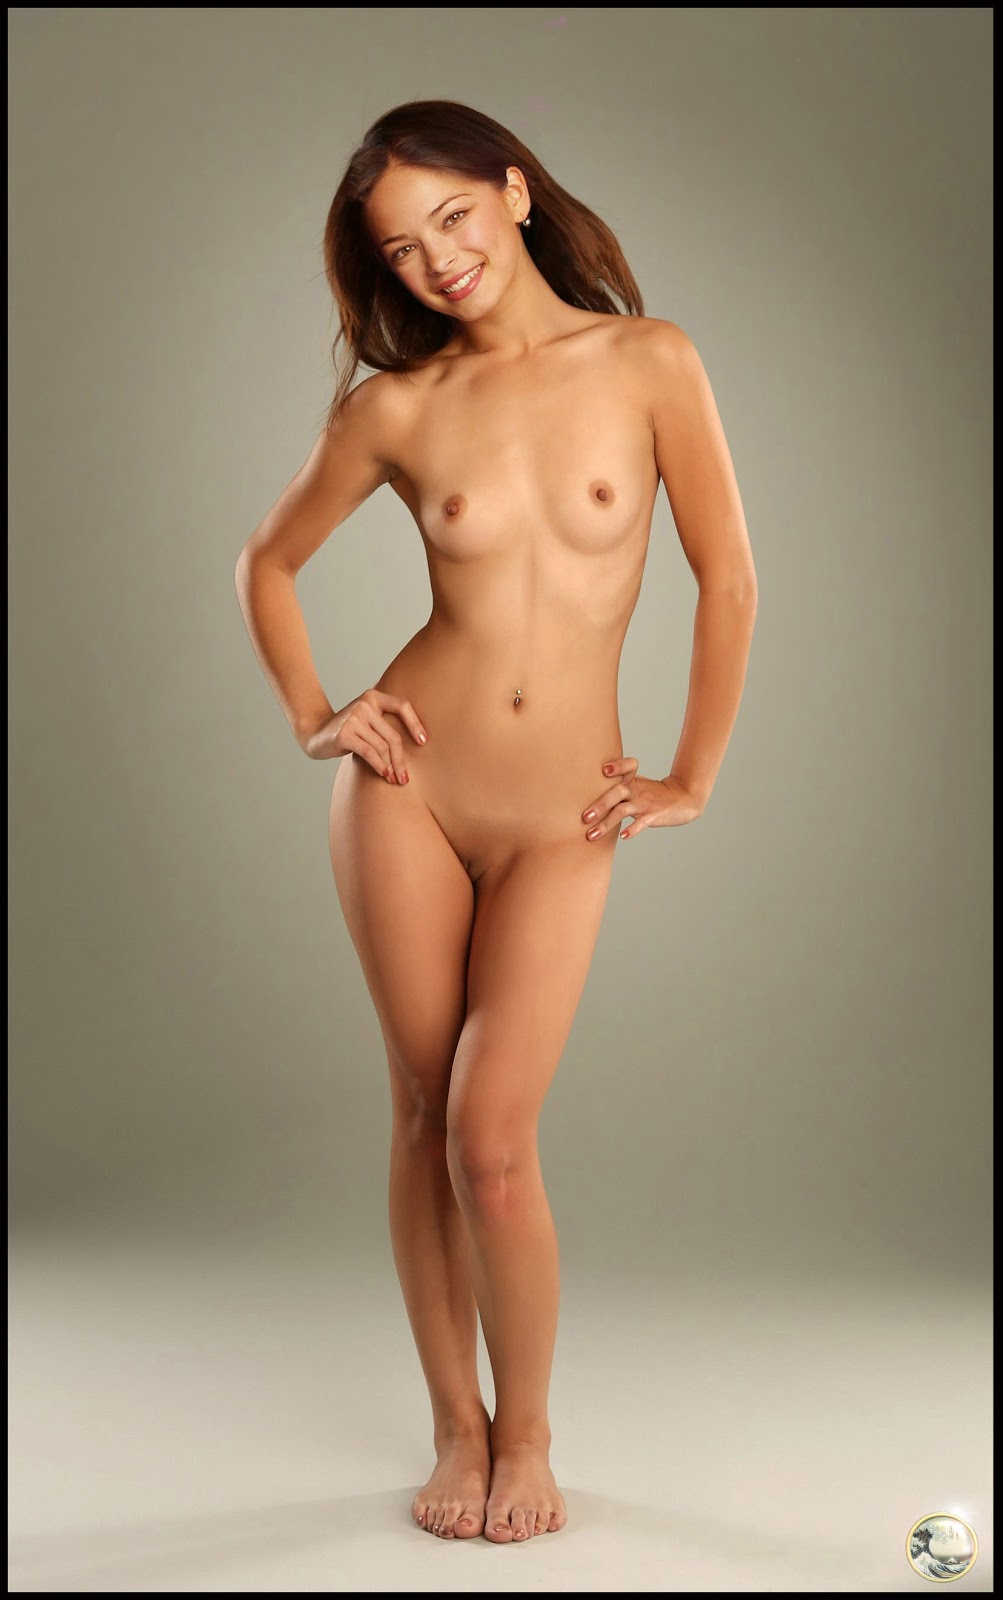 Smallville kristin kreuk nude apologise, but